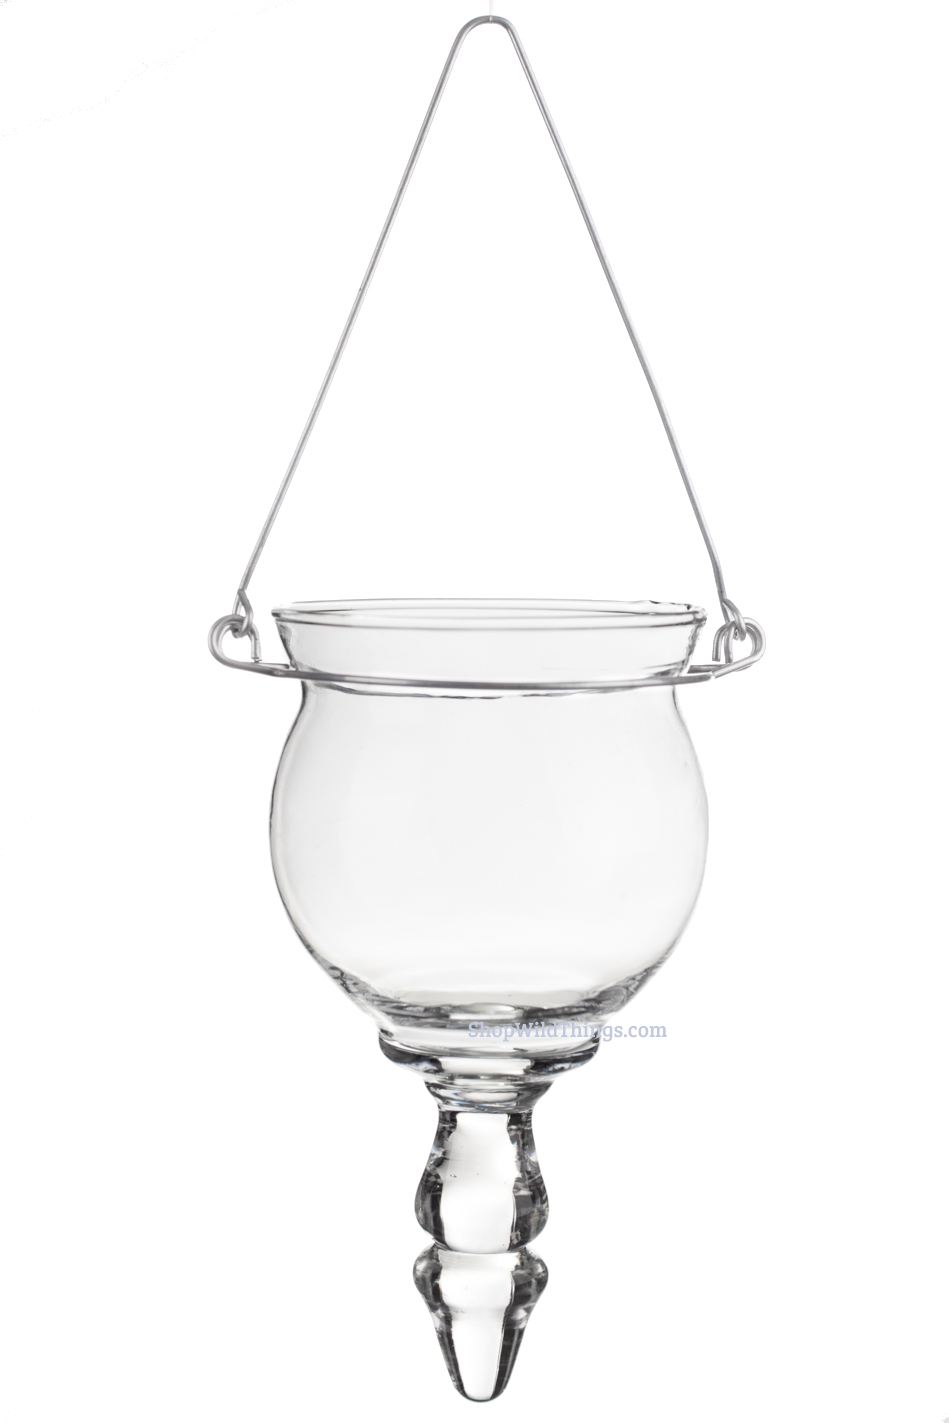 Candle Holders > Glass > Hanging